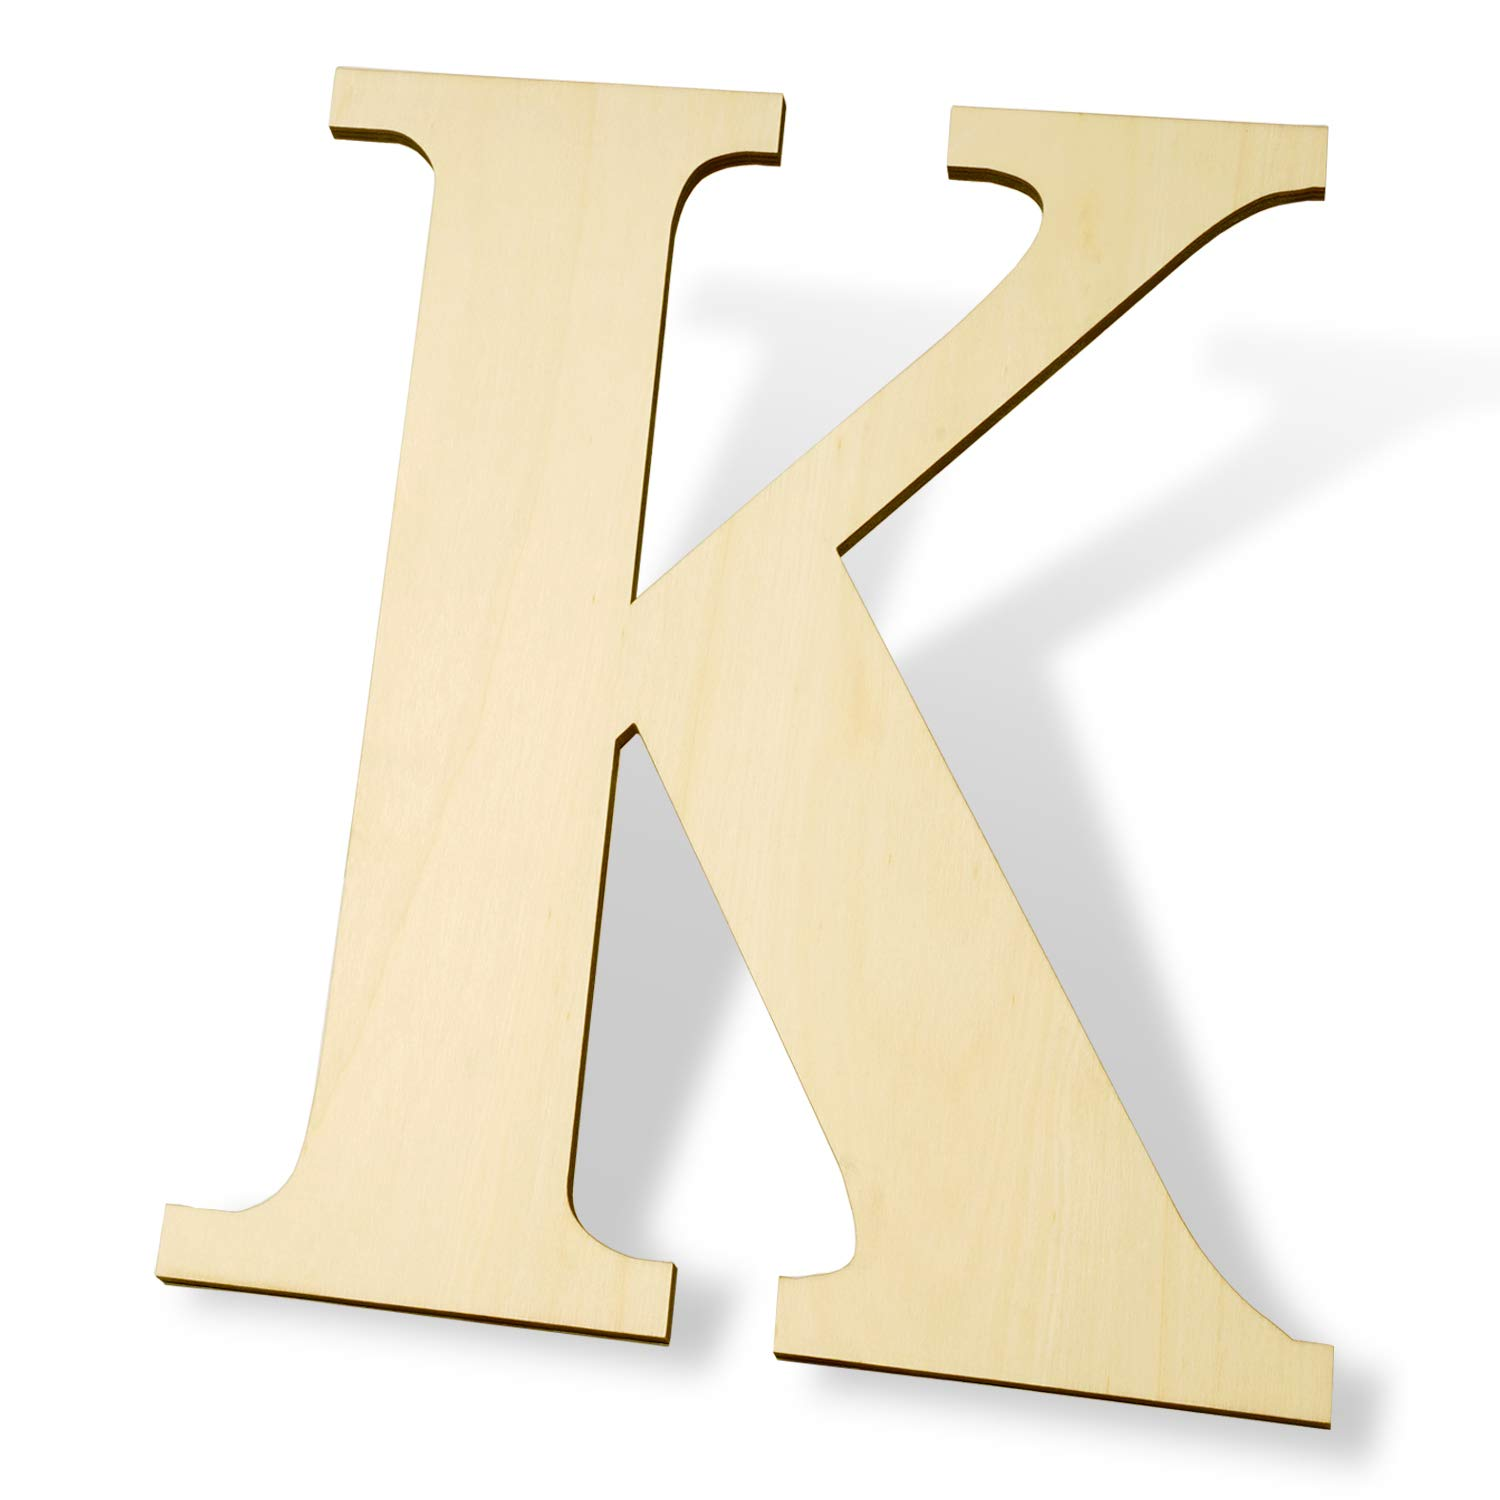 12 inch Wooden Letters K - Blank Wood Board, Wood Letters for Walls Decor, Party, DIY Craft Projects (12